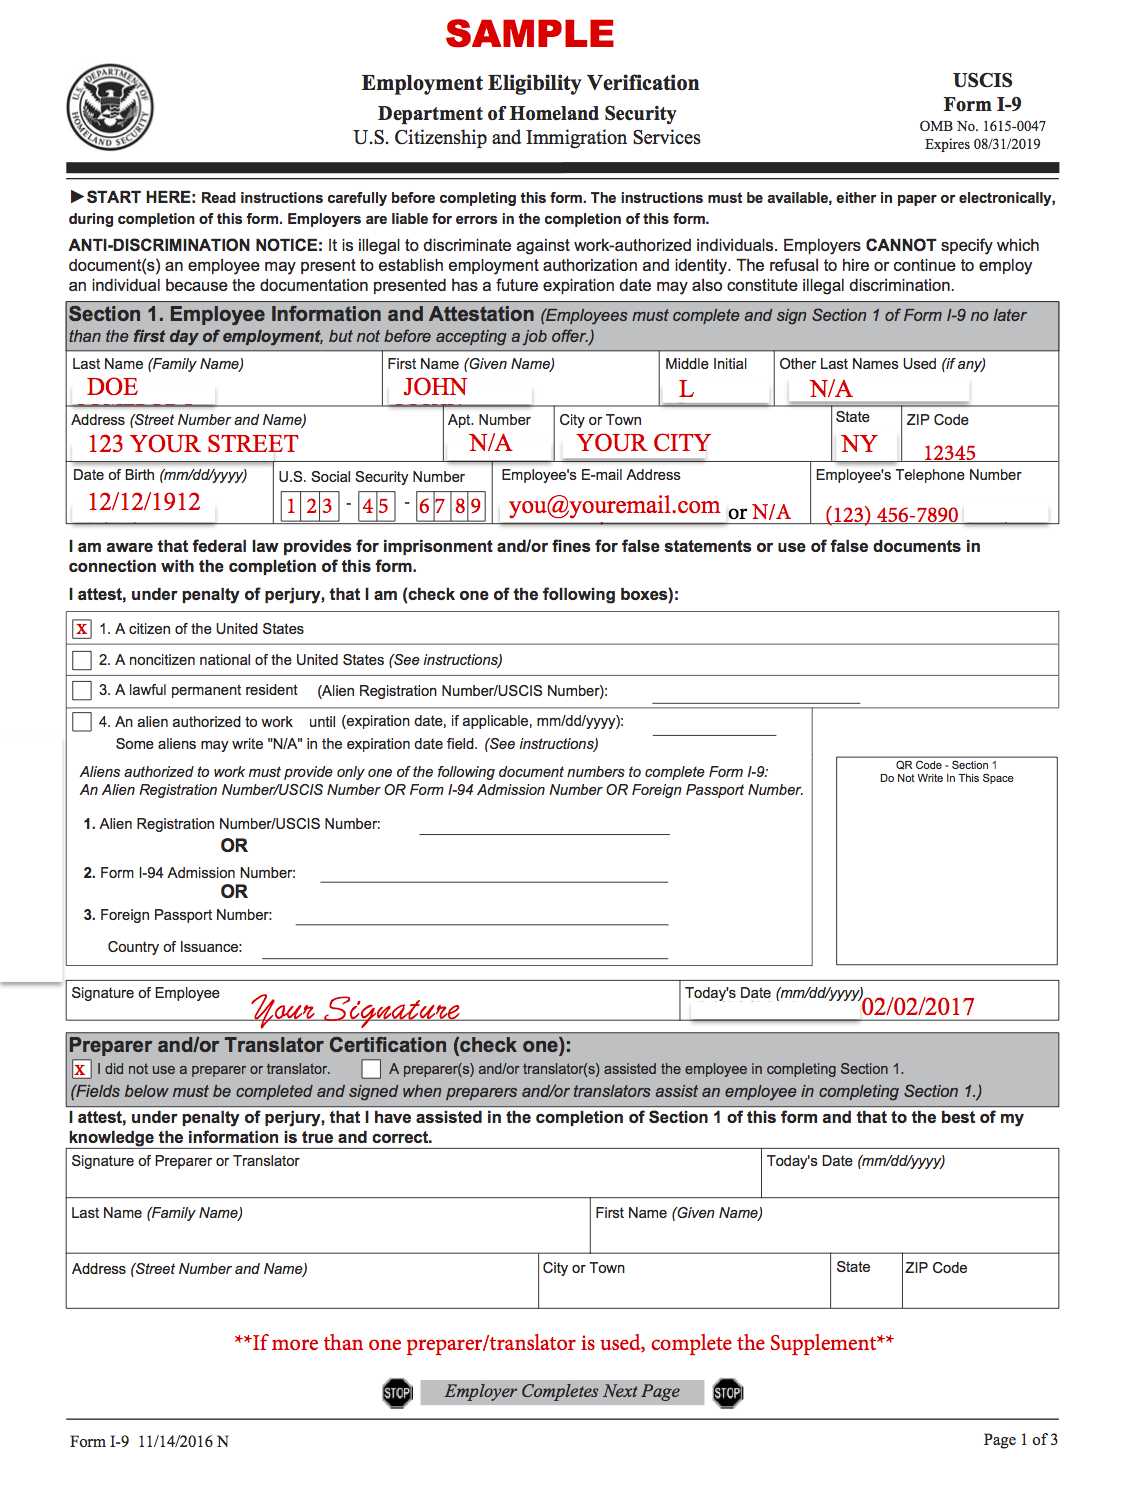 Sample I-9 form for reference only.